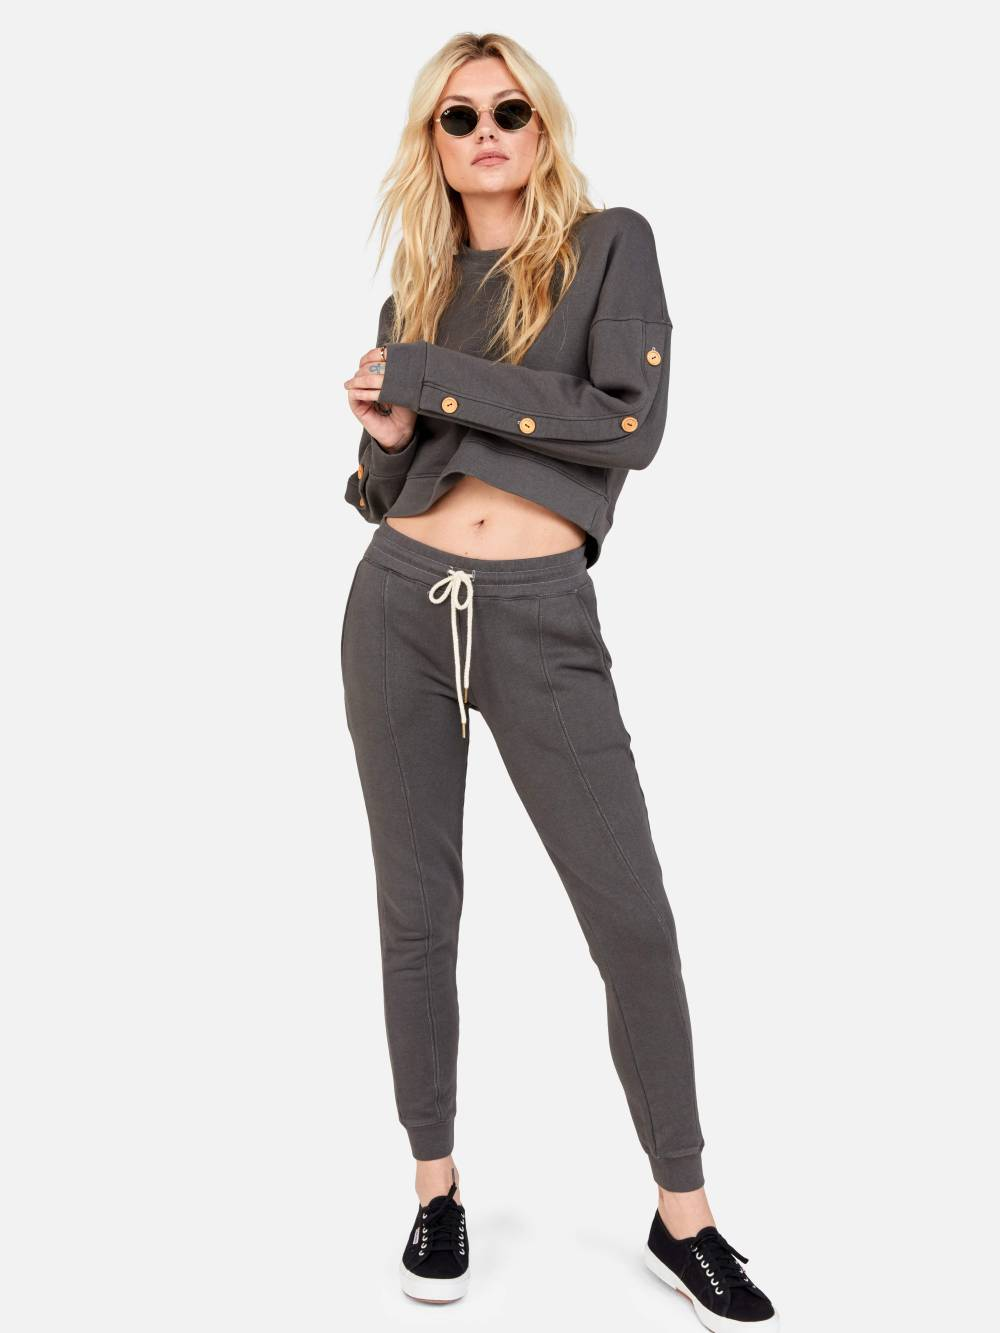 comfy cozy christmas party outfit